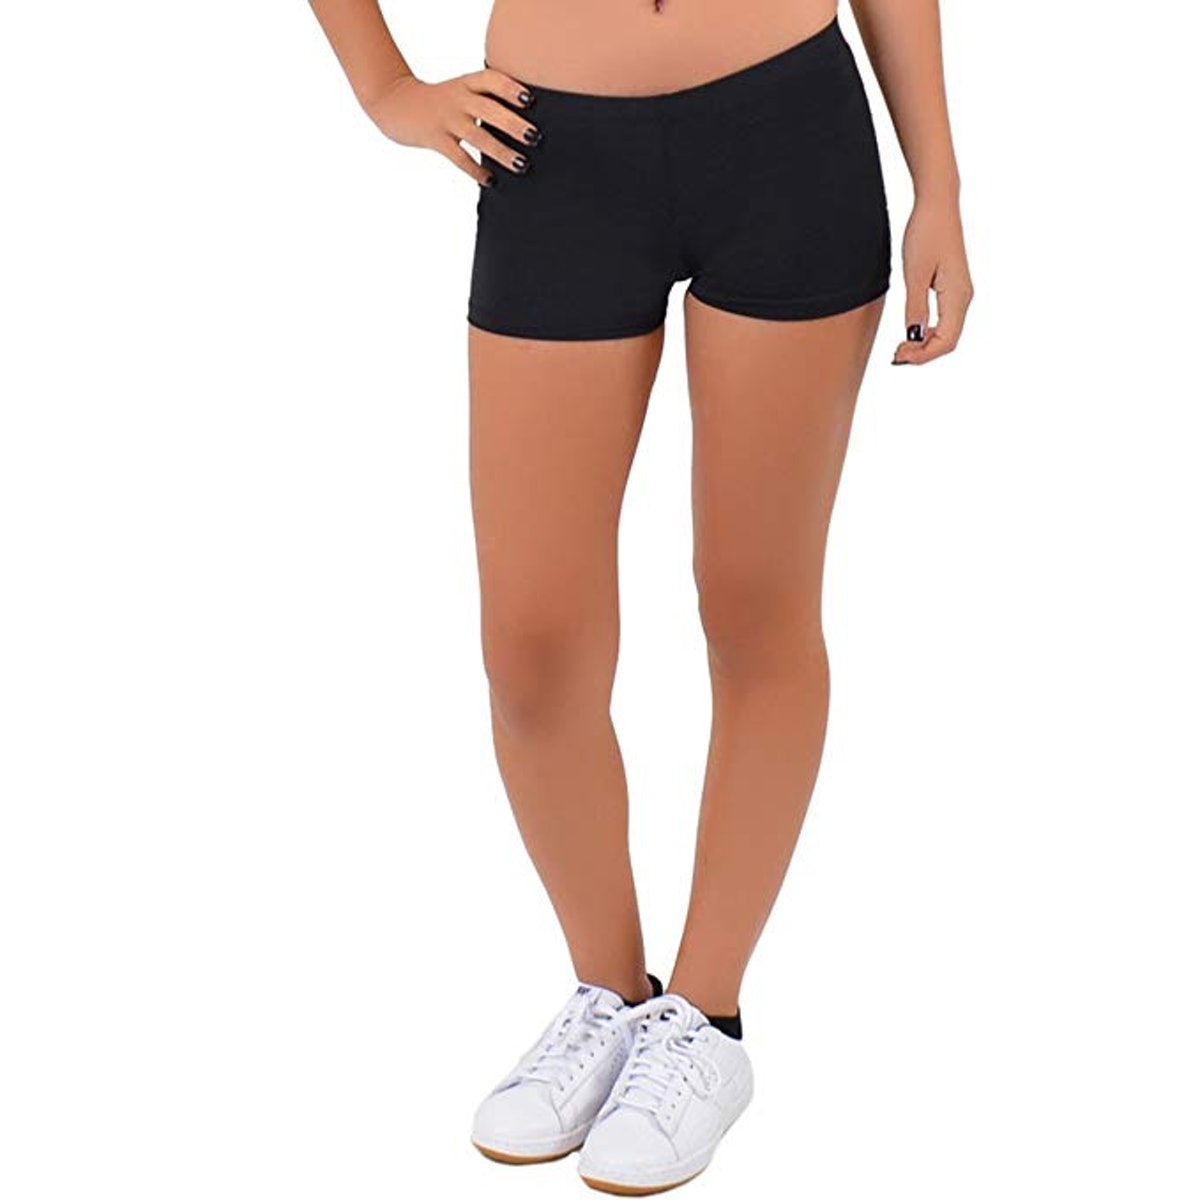 Stretch Is Comfort Dance Workout Shorts